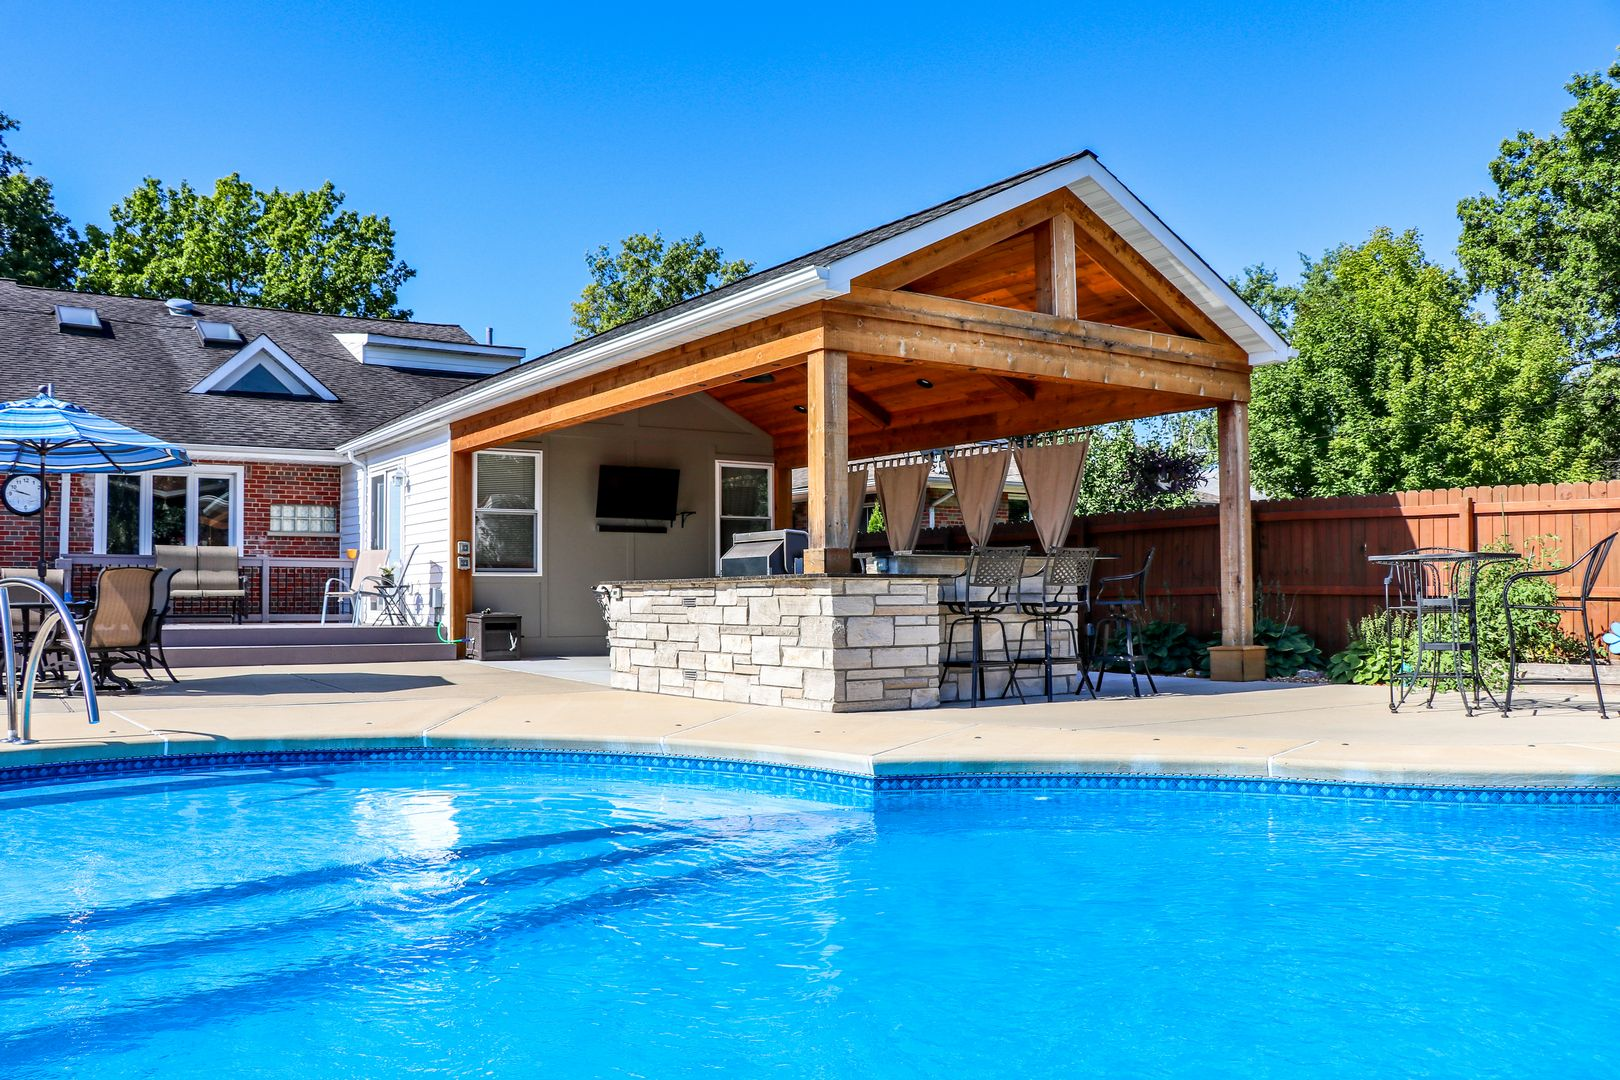 pool side outdoor room with an outdoor kitchen feature that has seating for up to five people